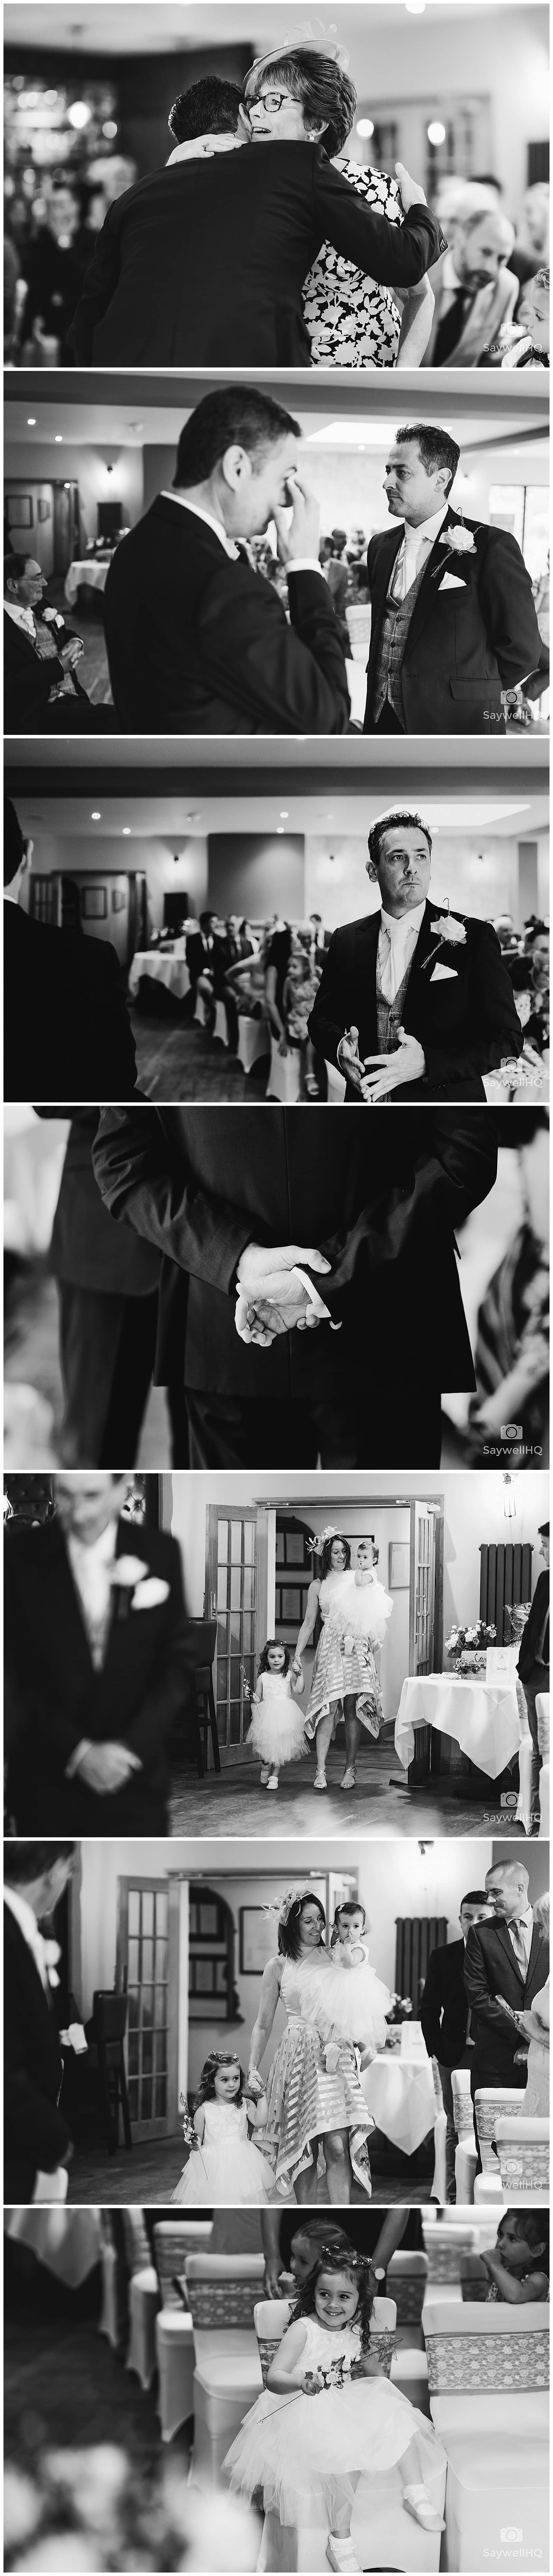 The Chequers Inn Woolsthorpe Wedding Photography - bride and her father enter the room for the wedding ceremony